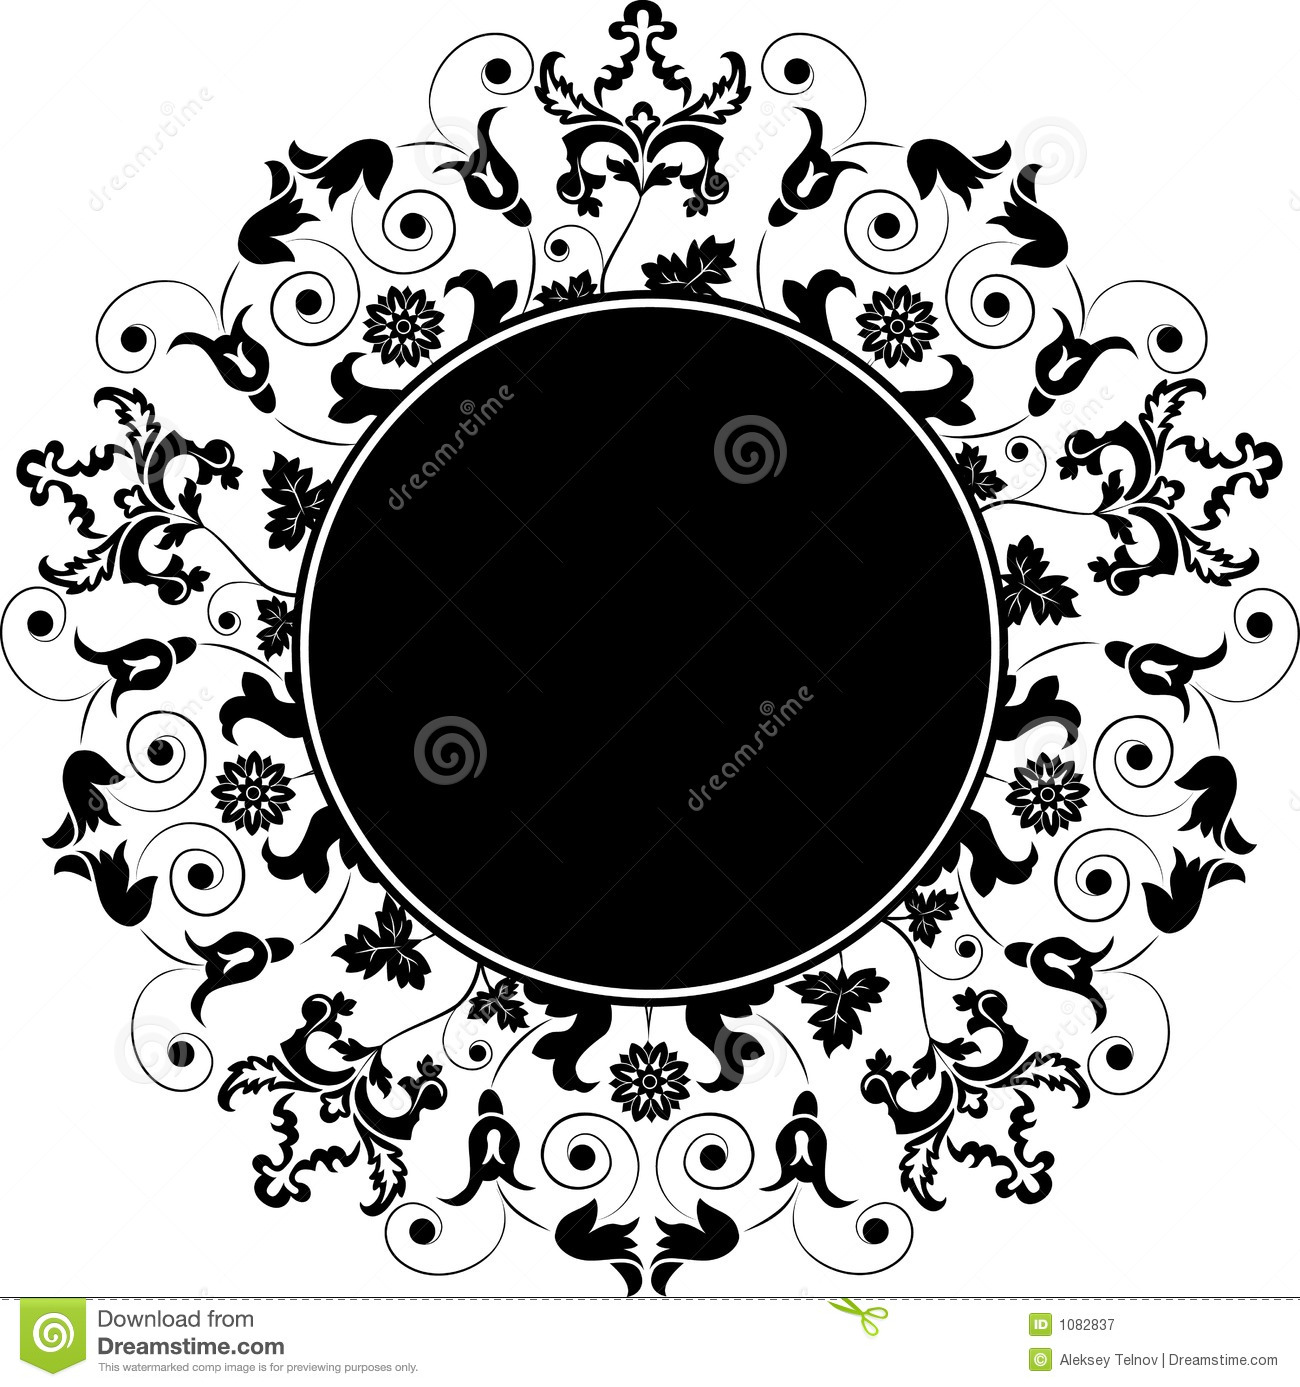 Floral Element For Design - Vector Stock Images - Image: 16331804